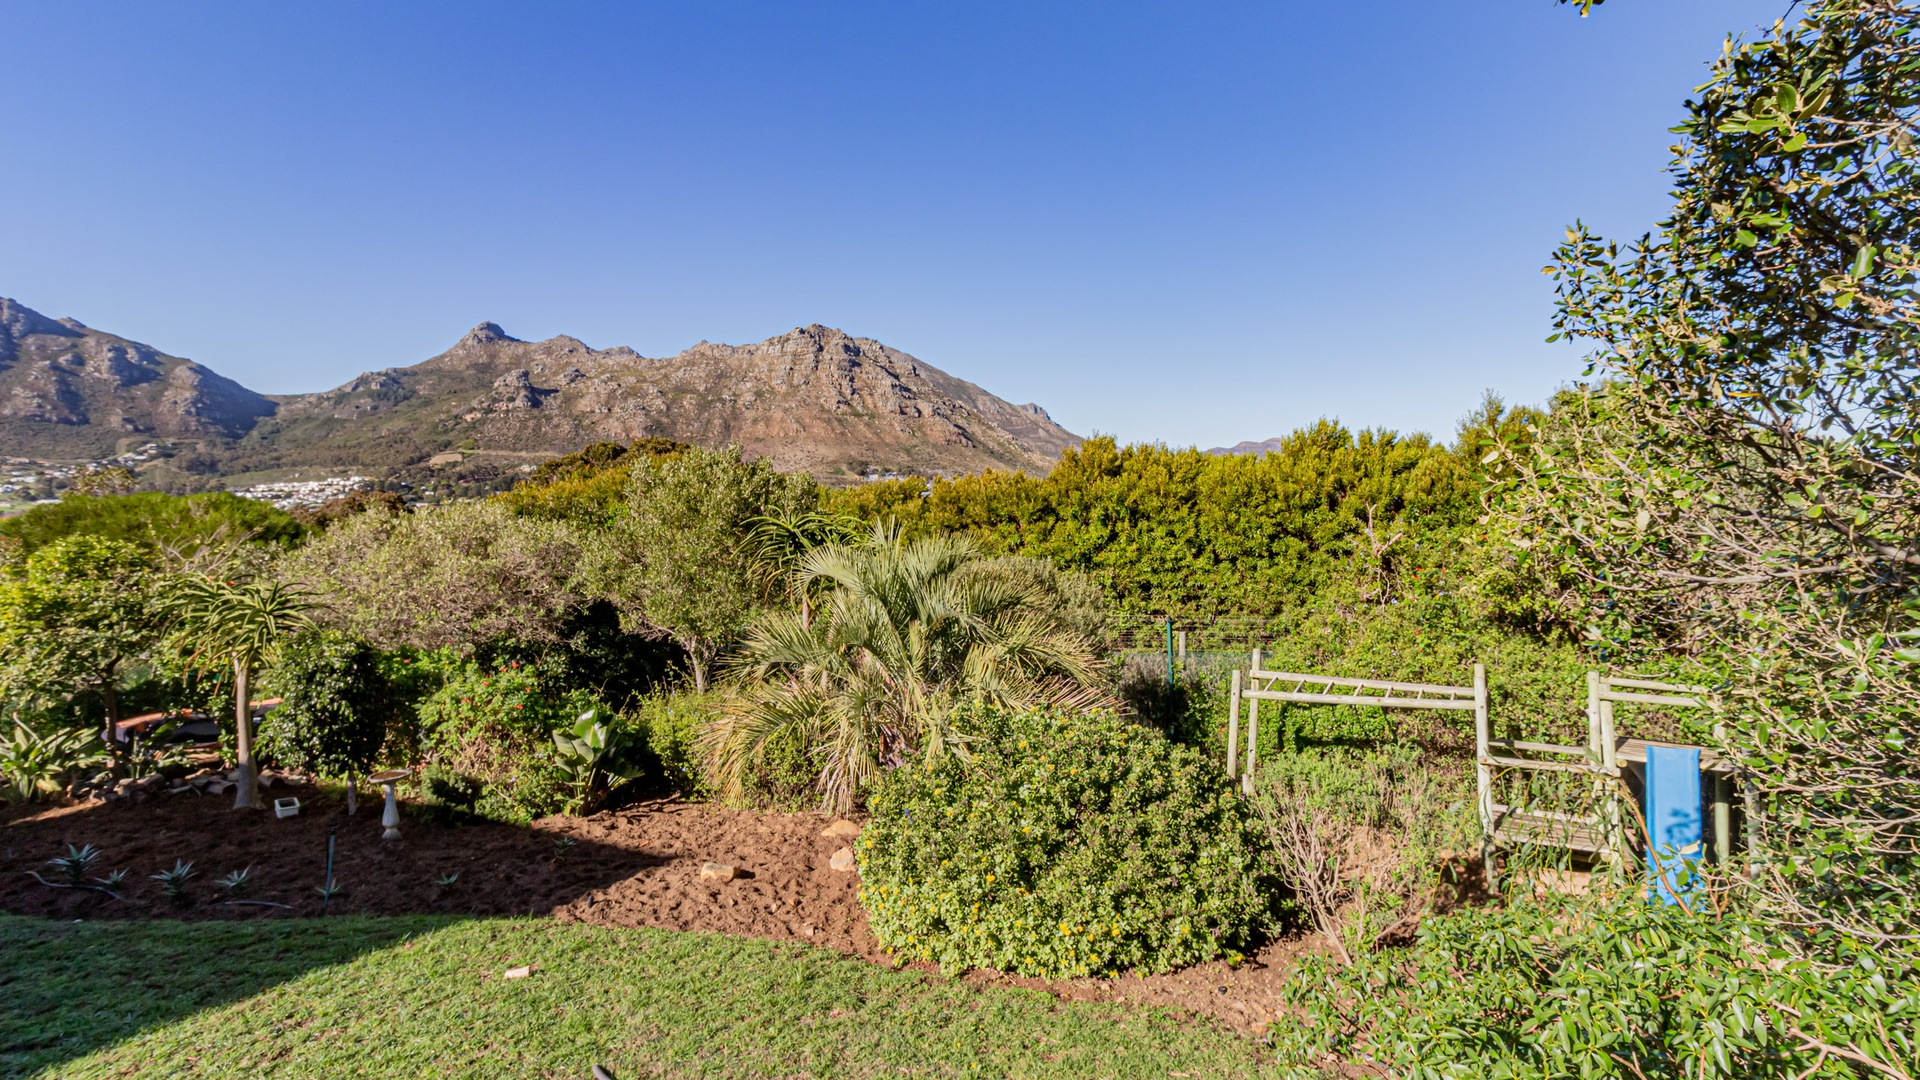 House in Hout Bay - Image-033.jpg